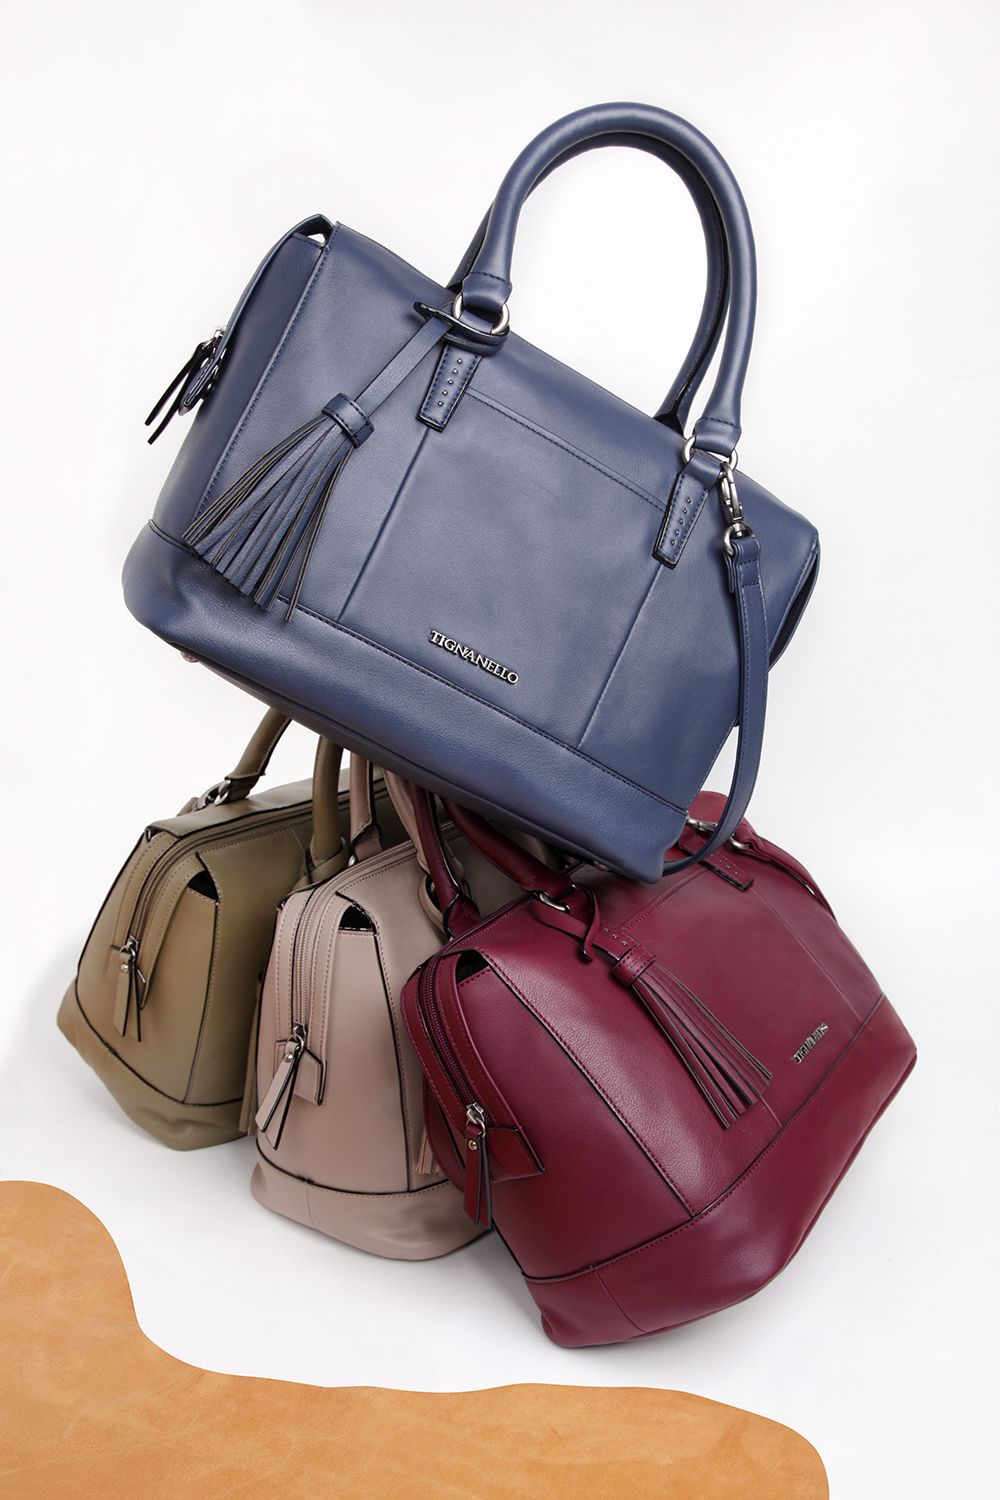 Made Of Ery Smooth Leather This Barrel Shaped Satchel Is The